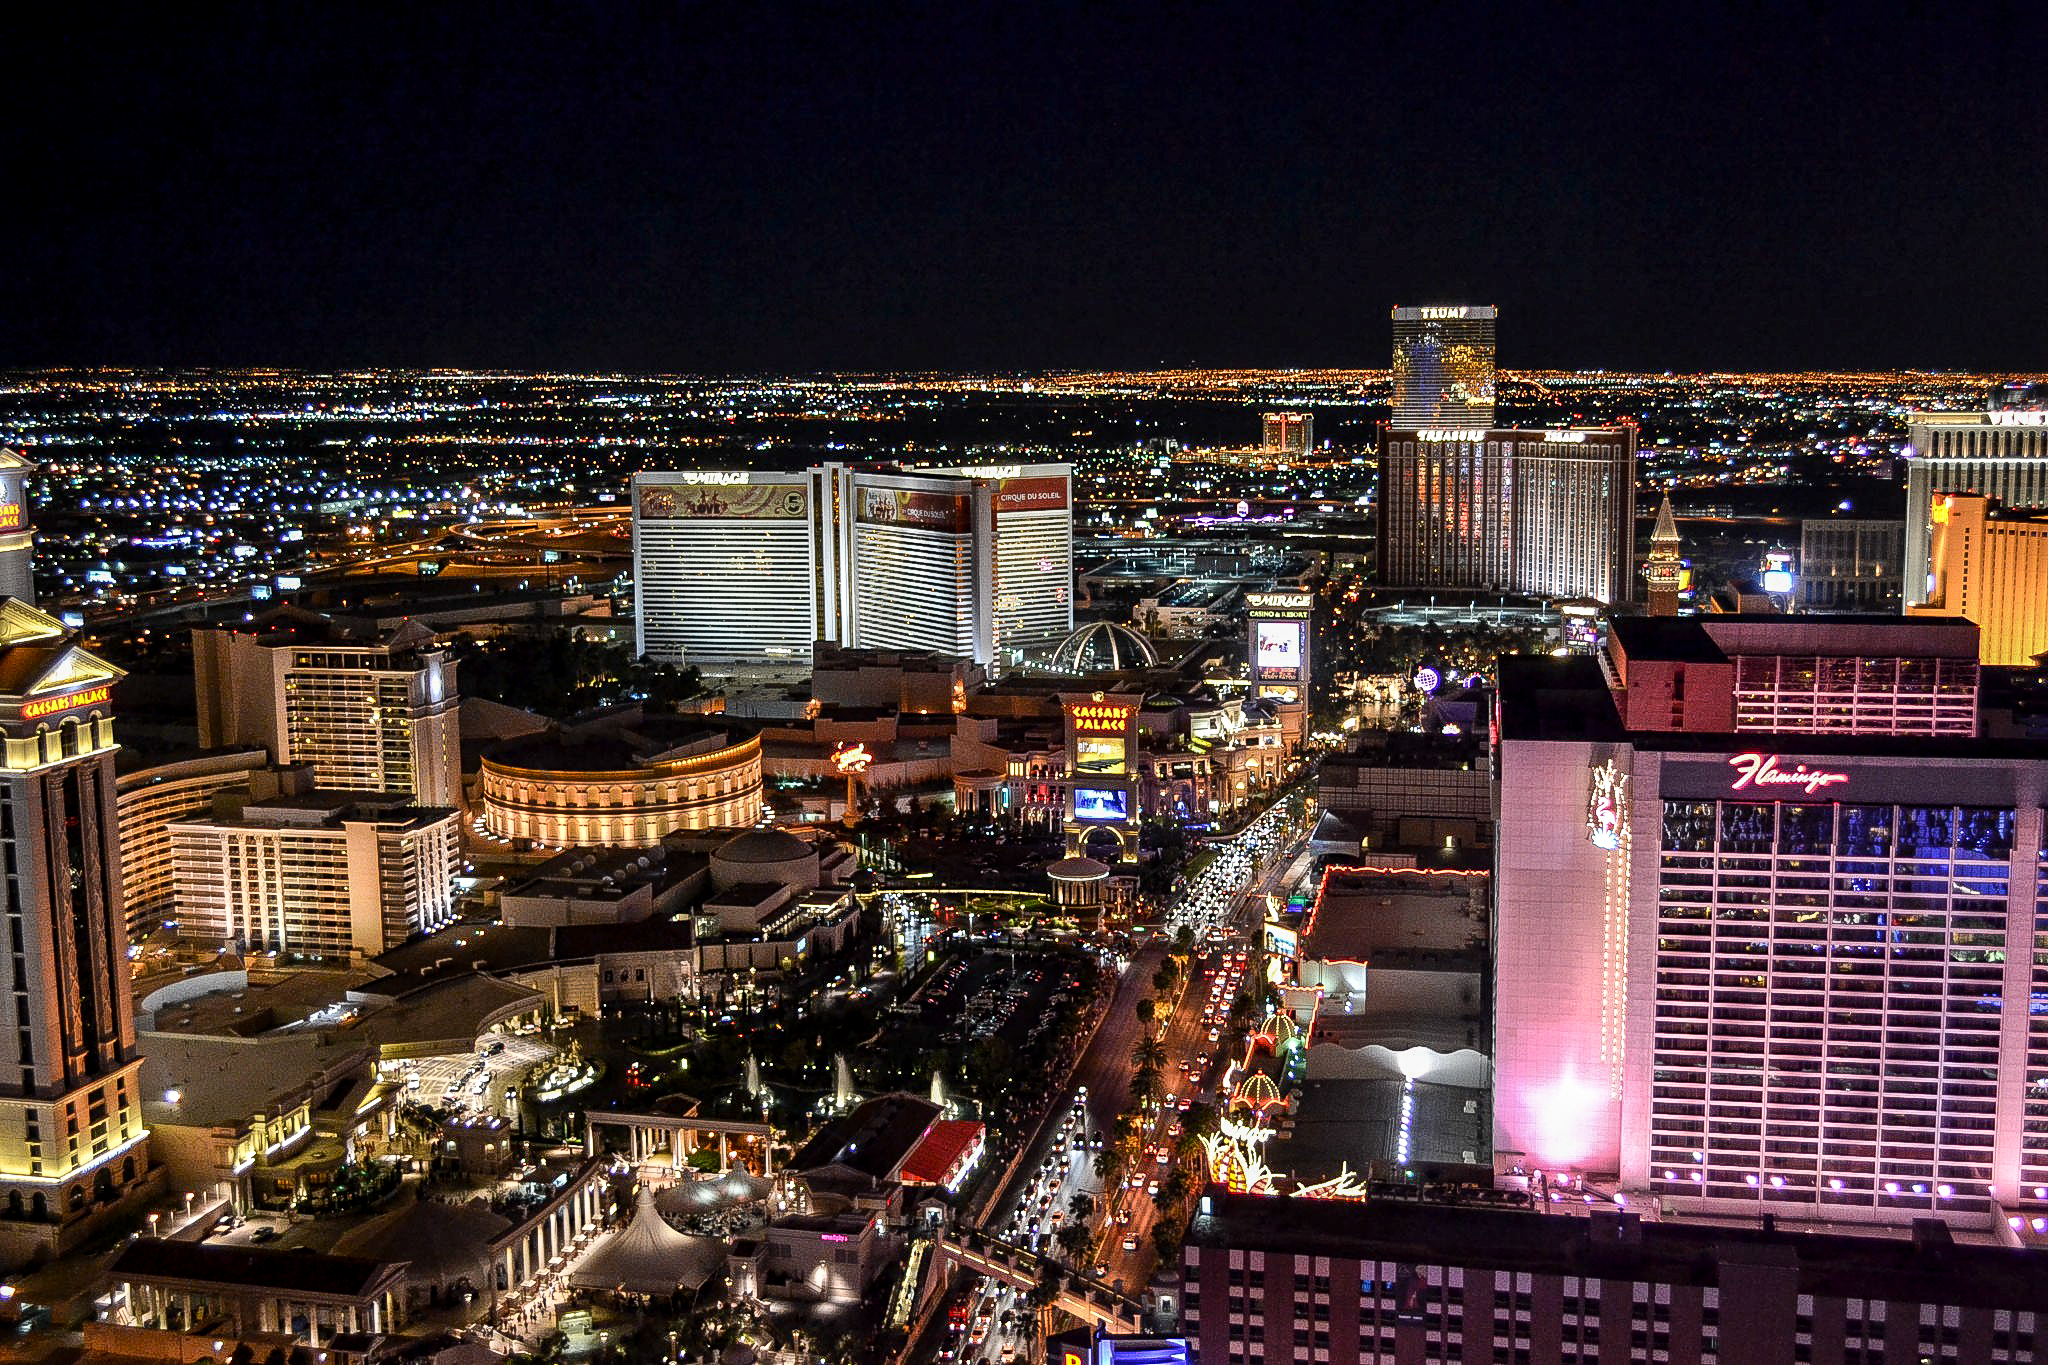 Las Vegas from the Eiffel Tower